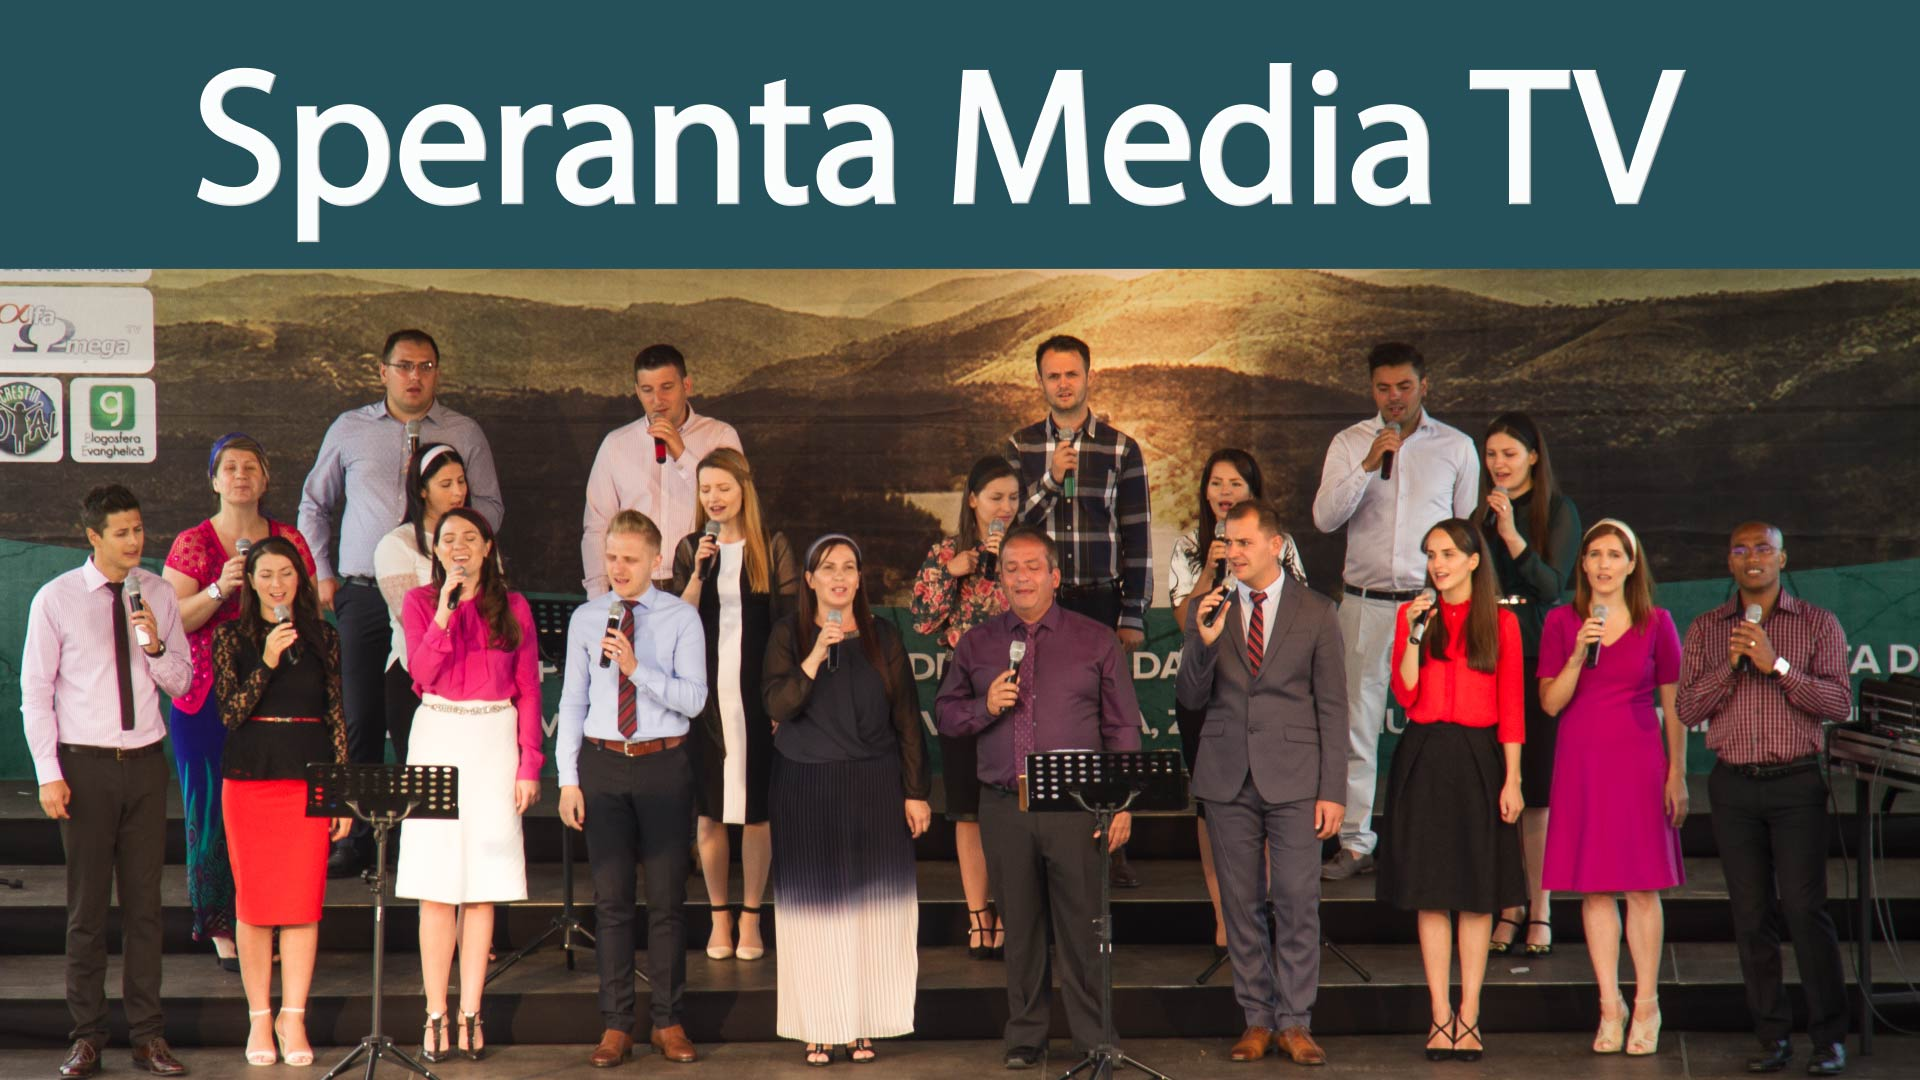 Speranta Media Tv